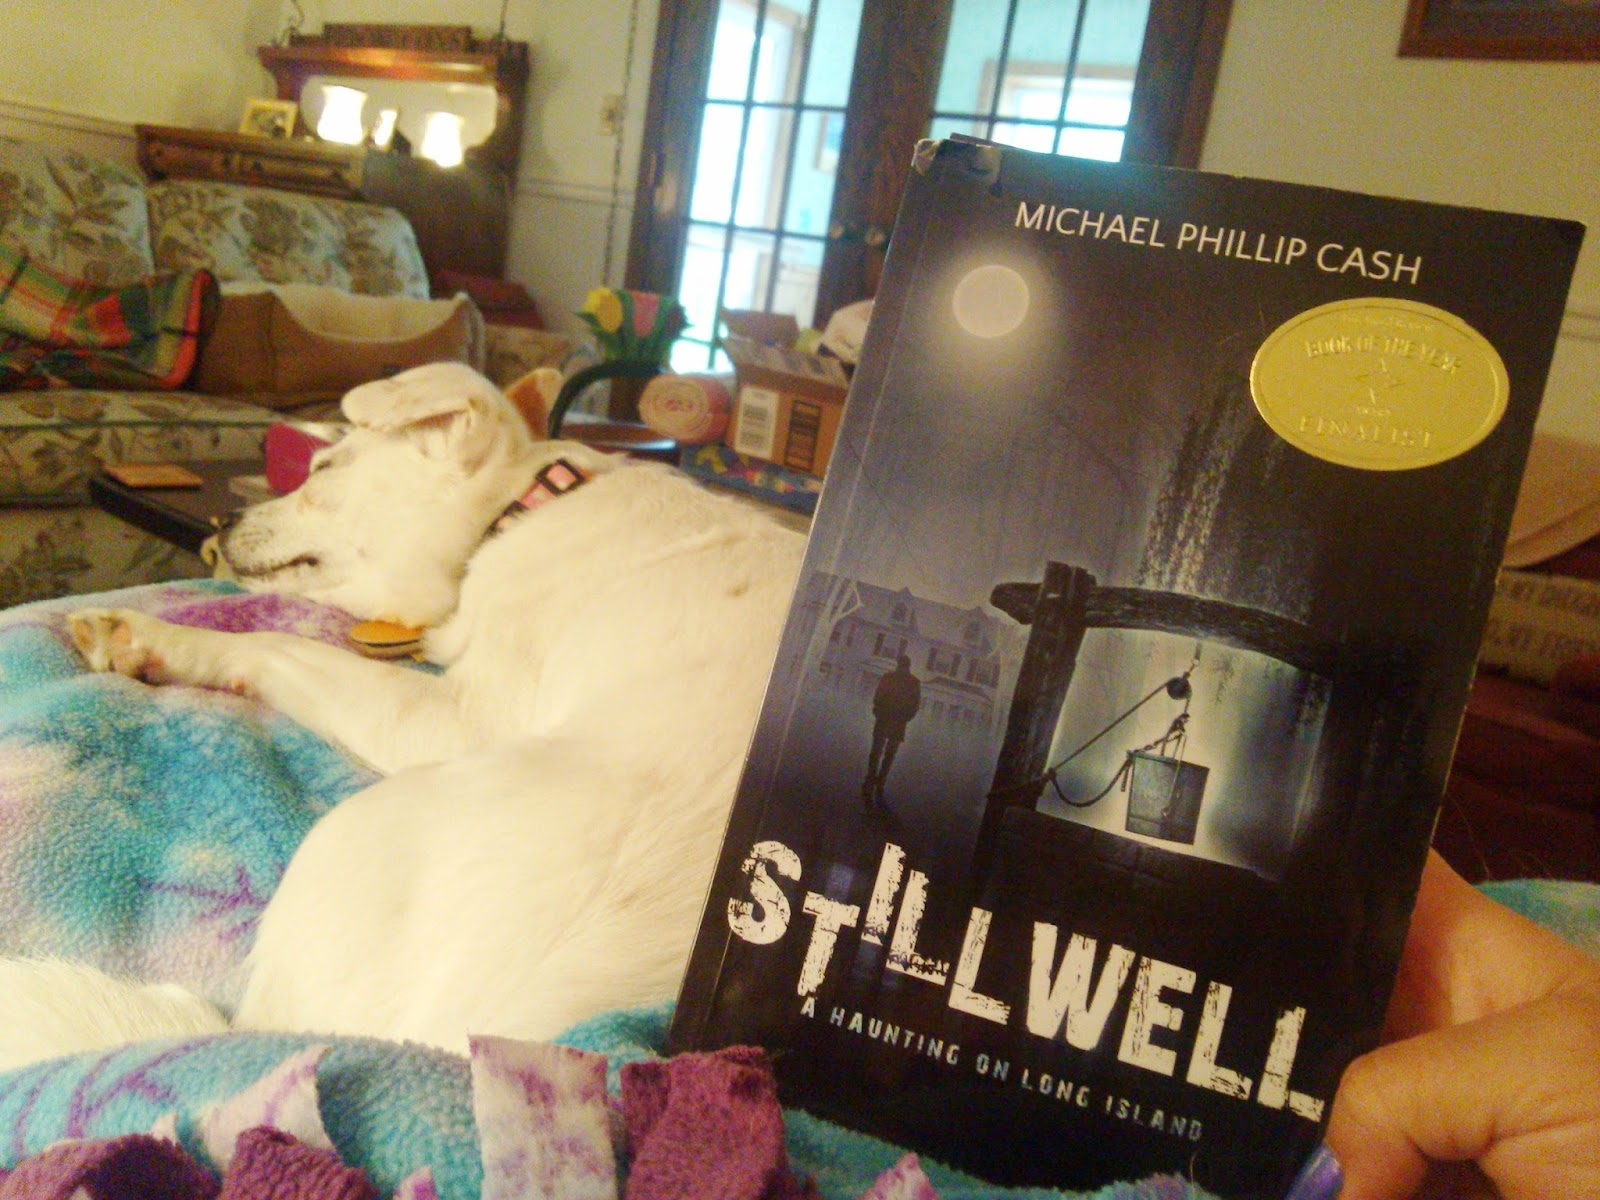 Stillwell: A Haunting on Long Island - Book Review